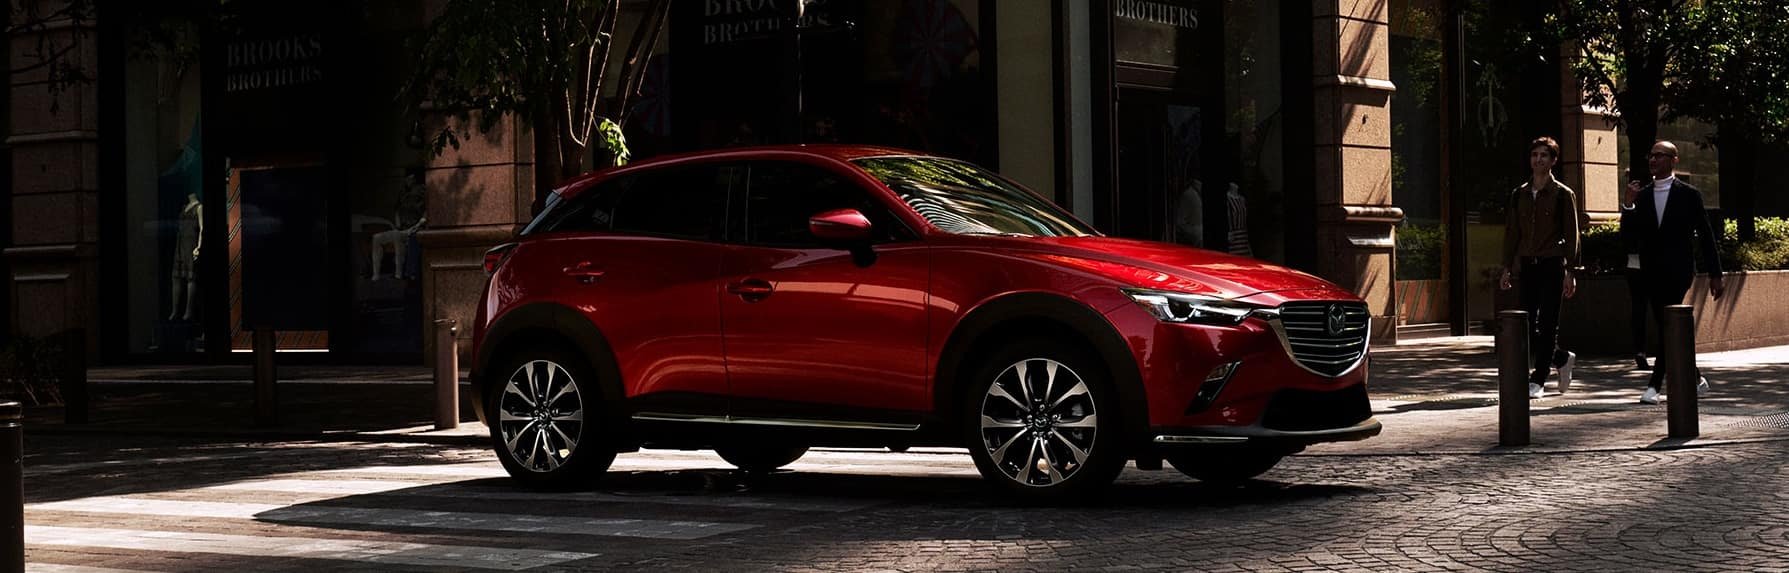 A Red 2019 Mazda CX-3 parked